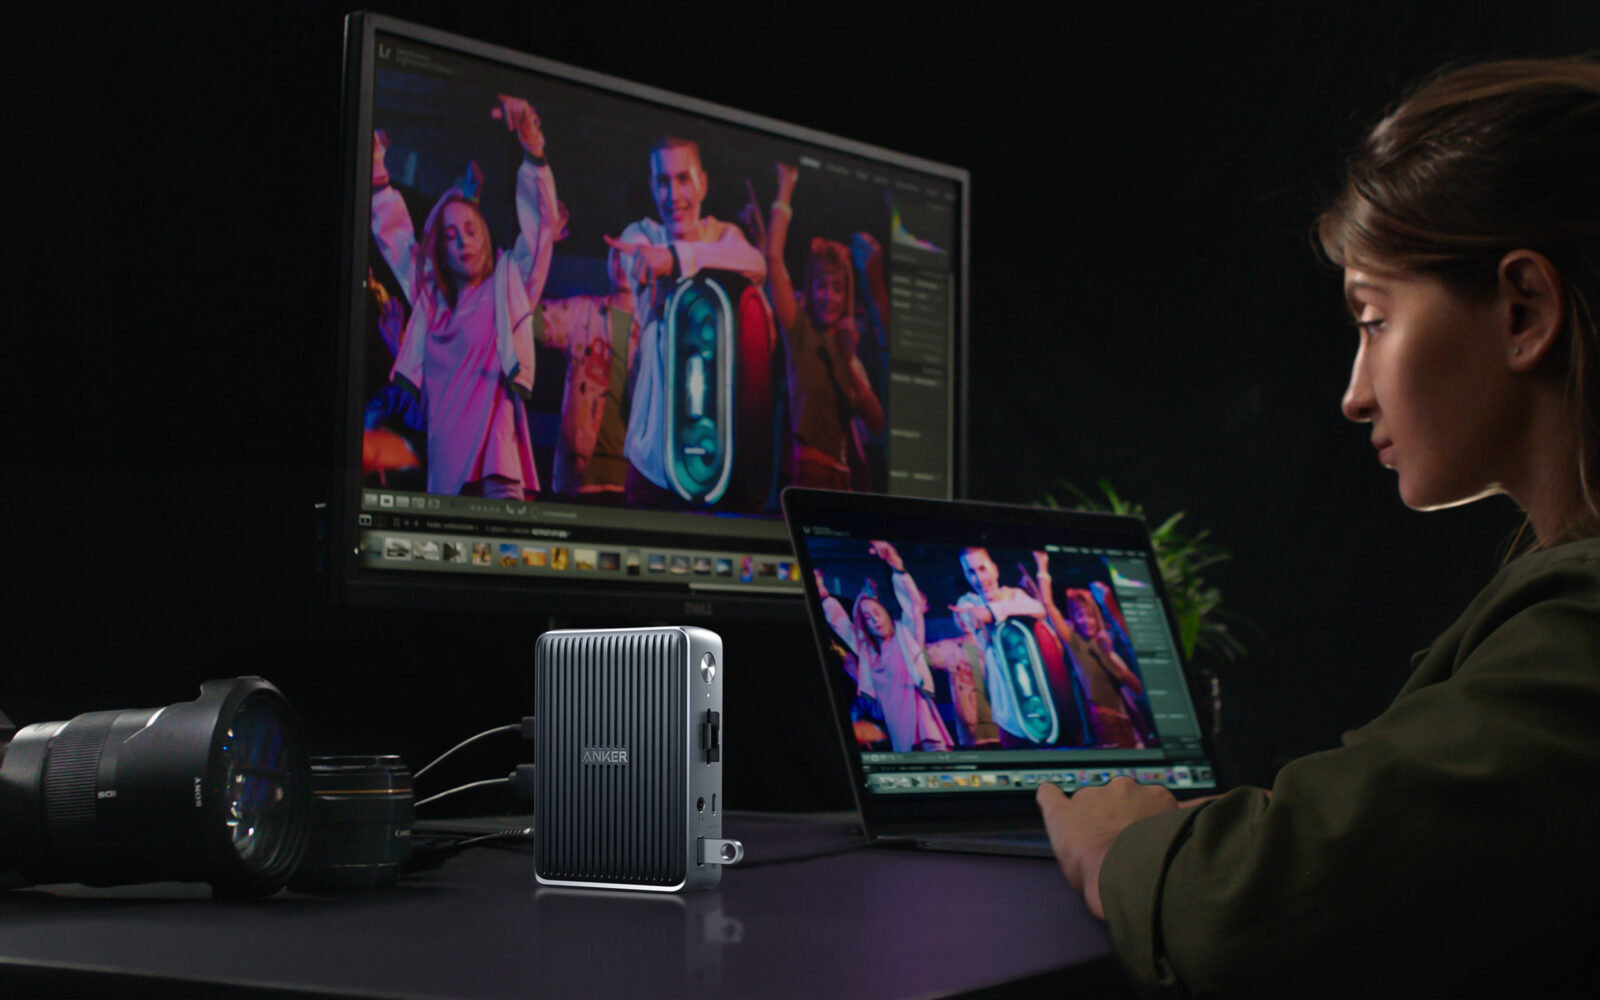 PowerExpand Elite 13-in-1 Thunderbolt 3 Dock and nothing else matters